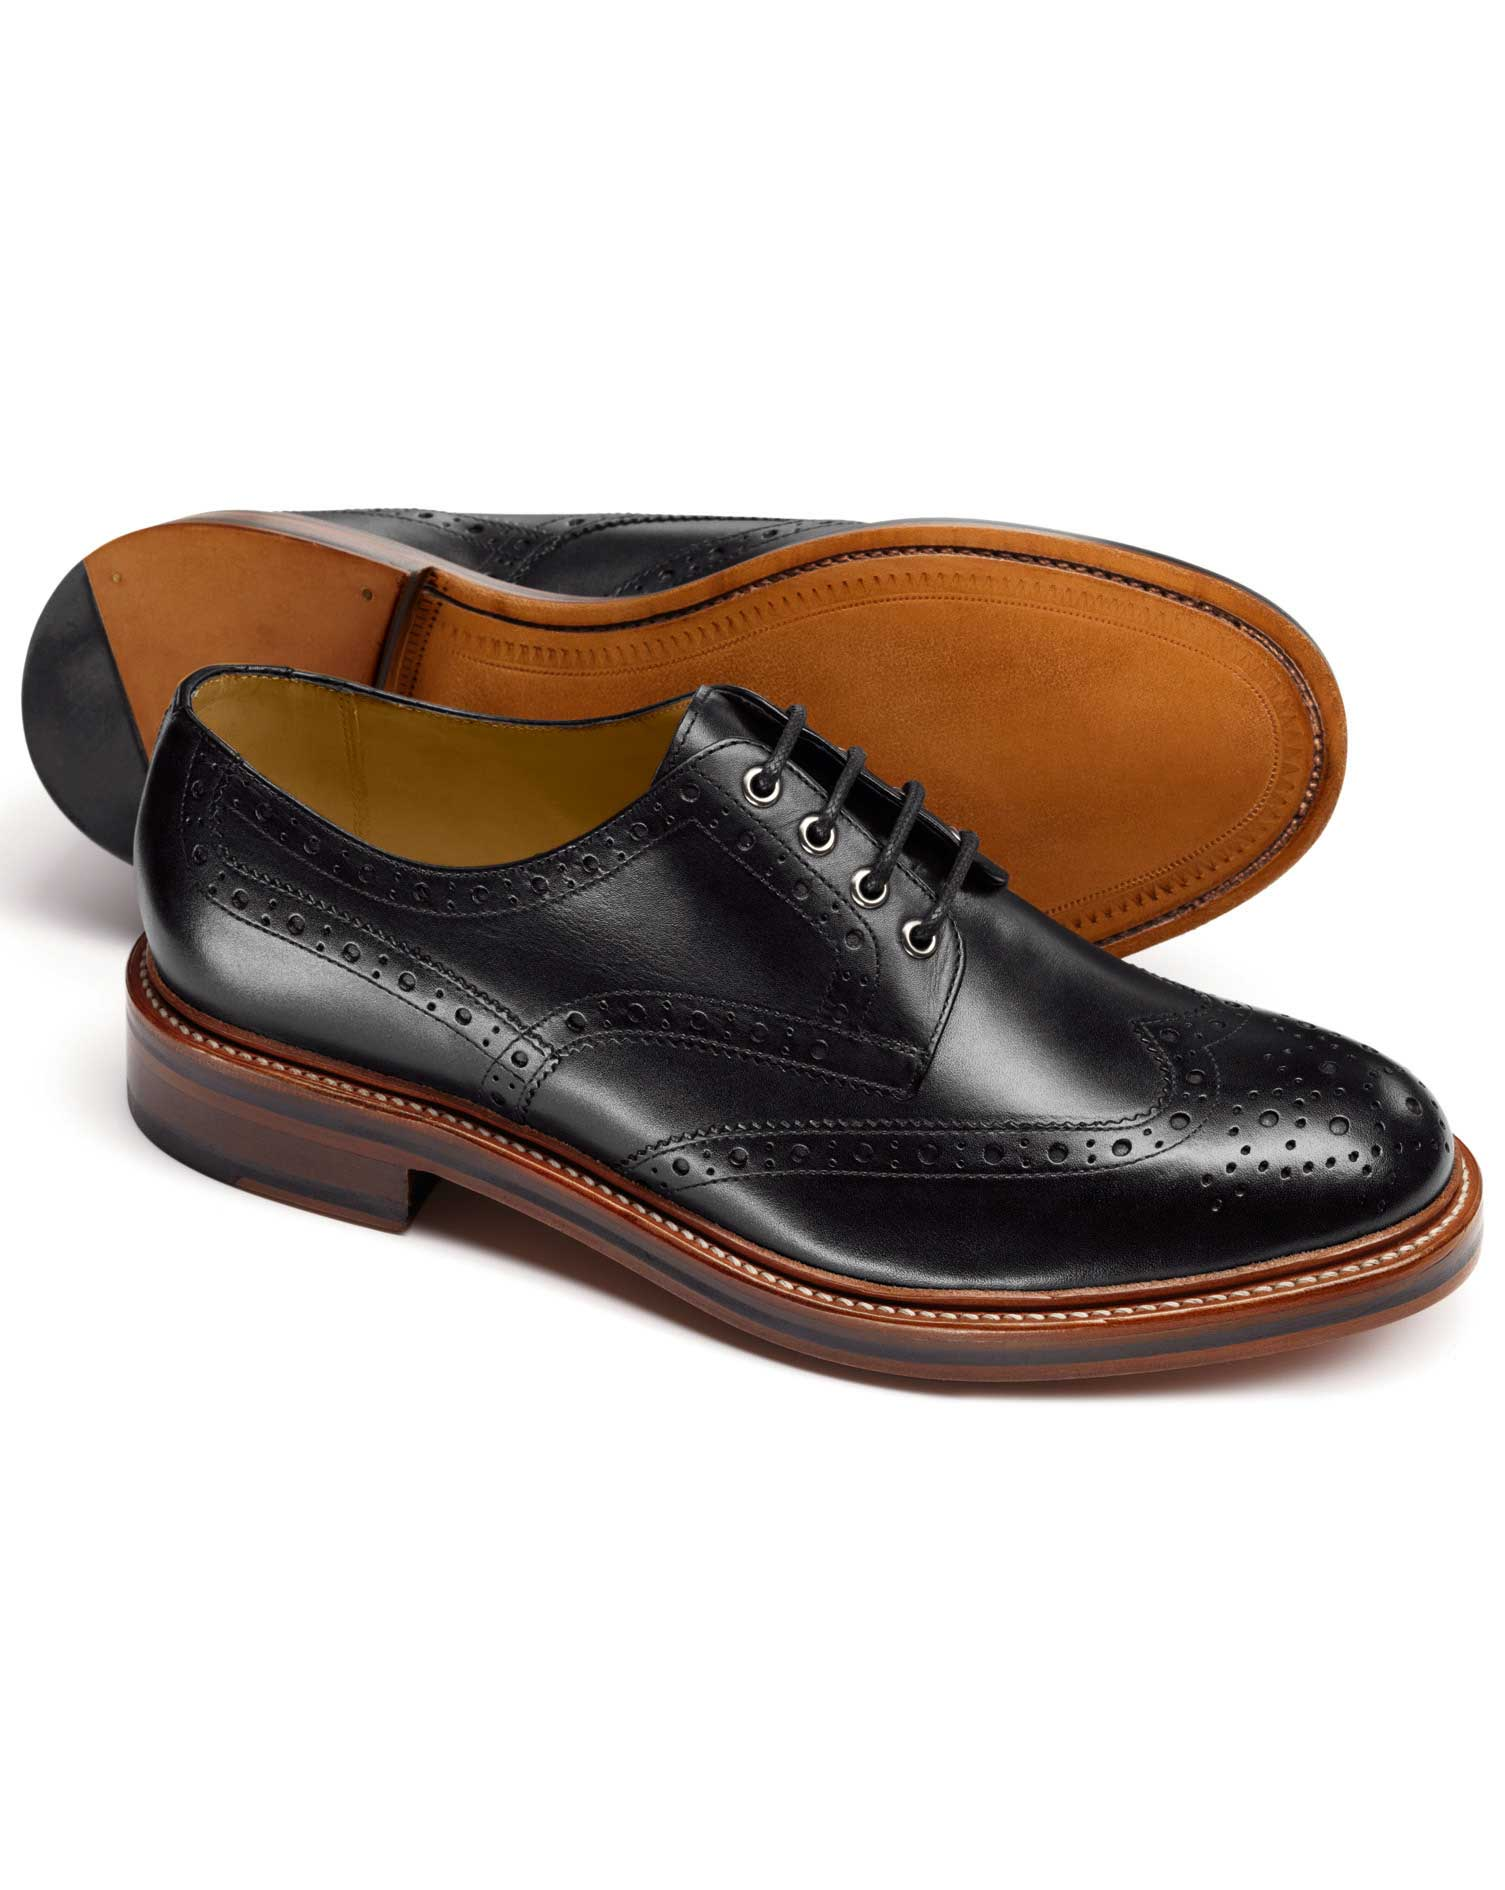 13bdbcc85e46c1 Handmade mens derby black dress shoes, Men good year welted real eather  shoes